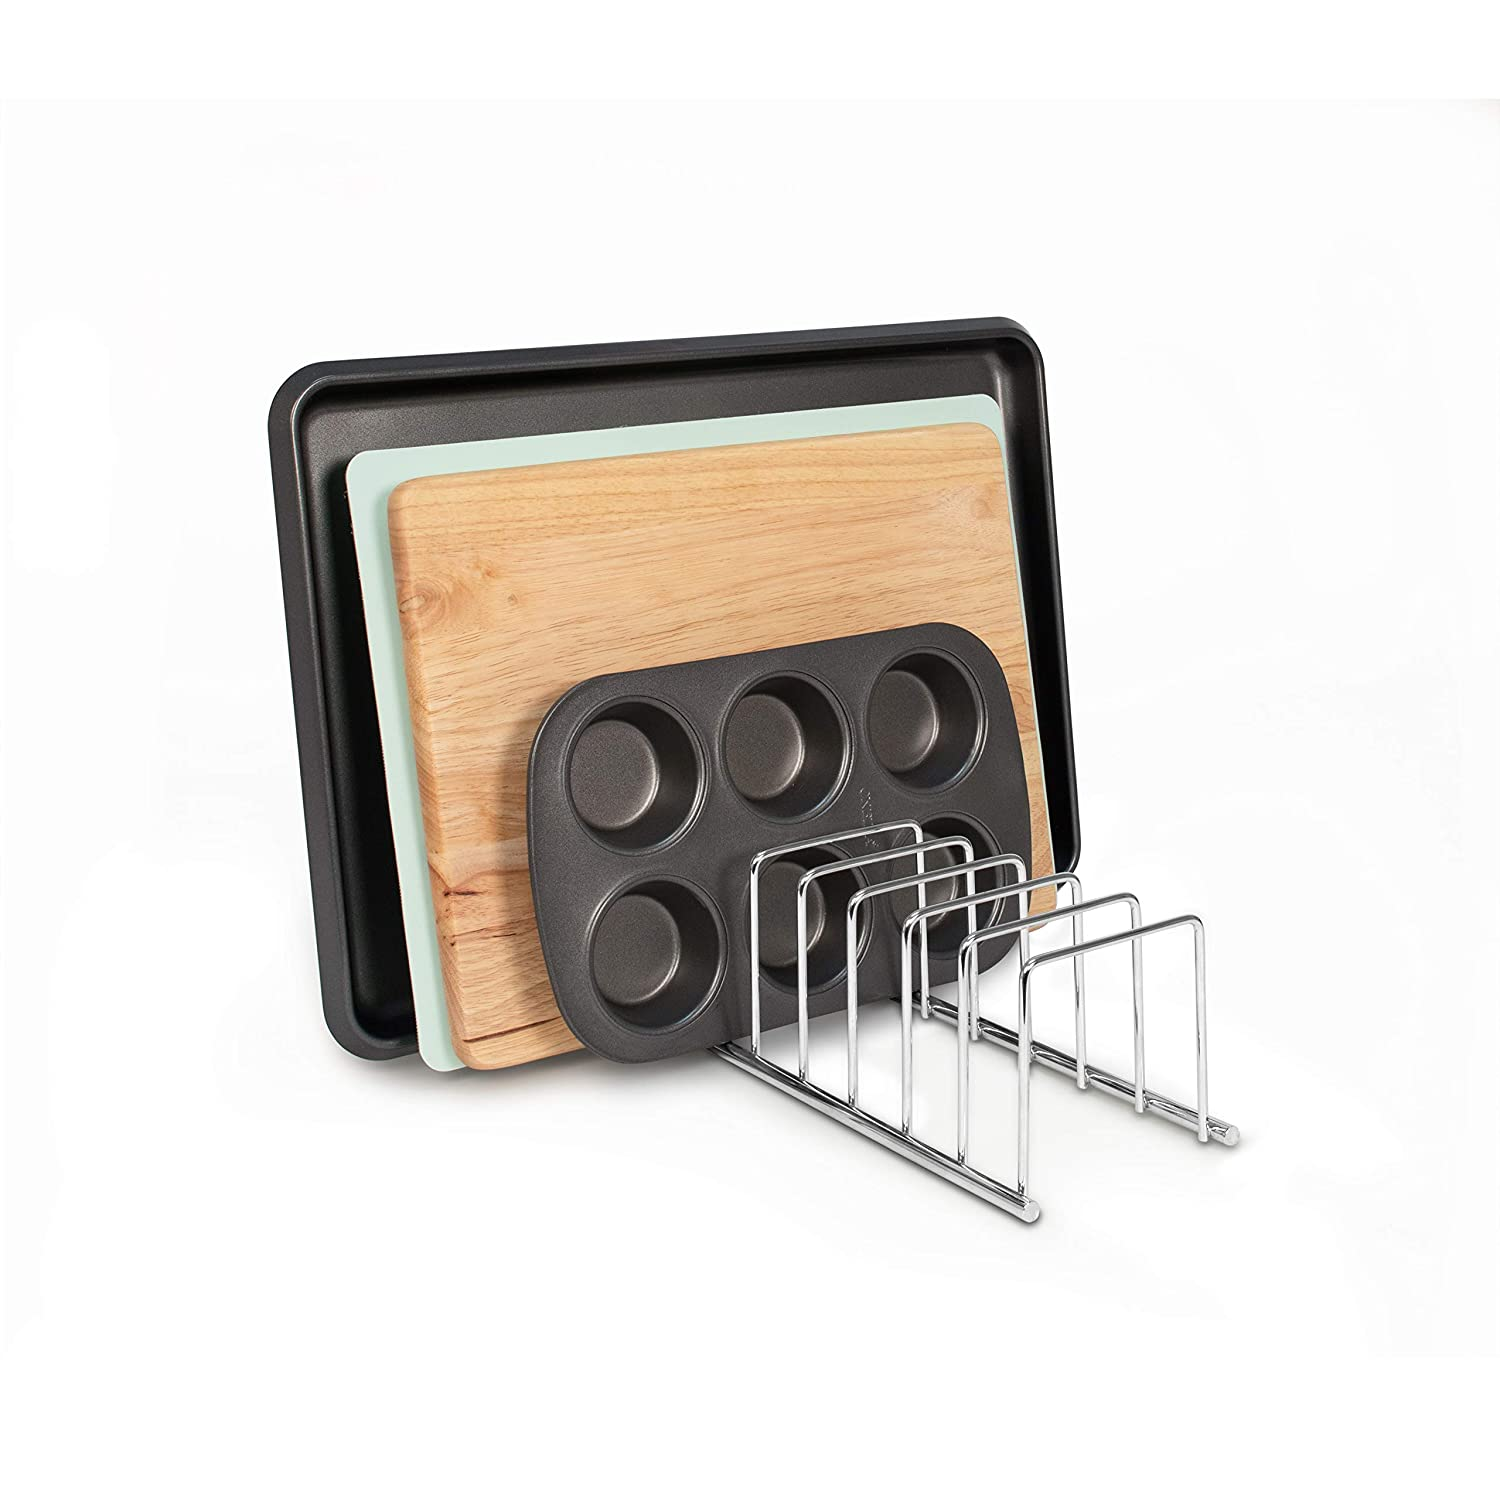 Spectrum Diversified St Bakeware Organizer Cutting Board Holder Louis Lid Organizer Chrome Cookie Sheet Organizer